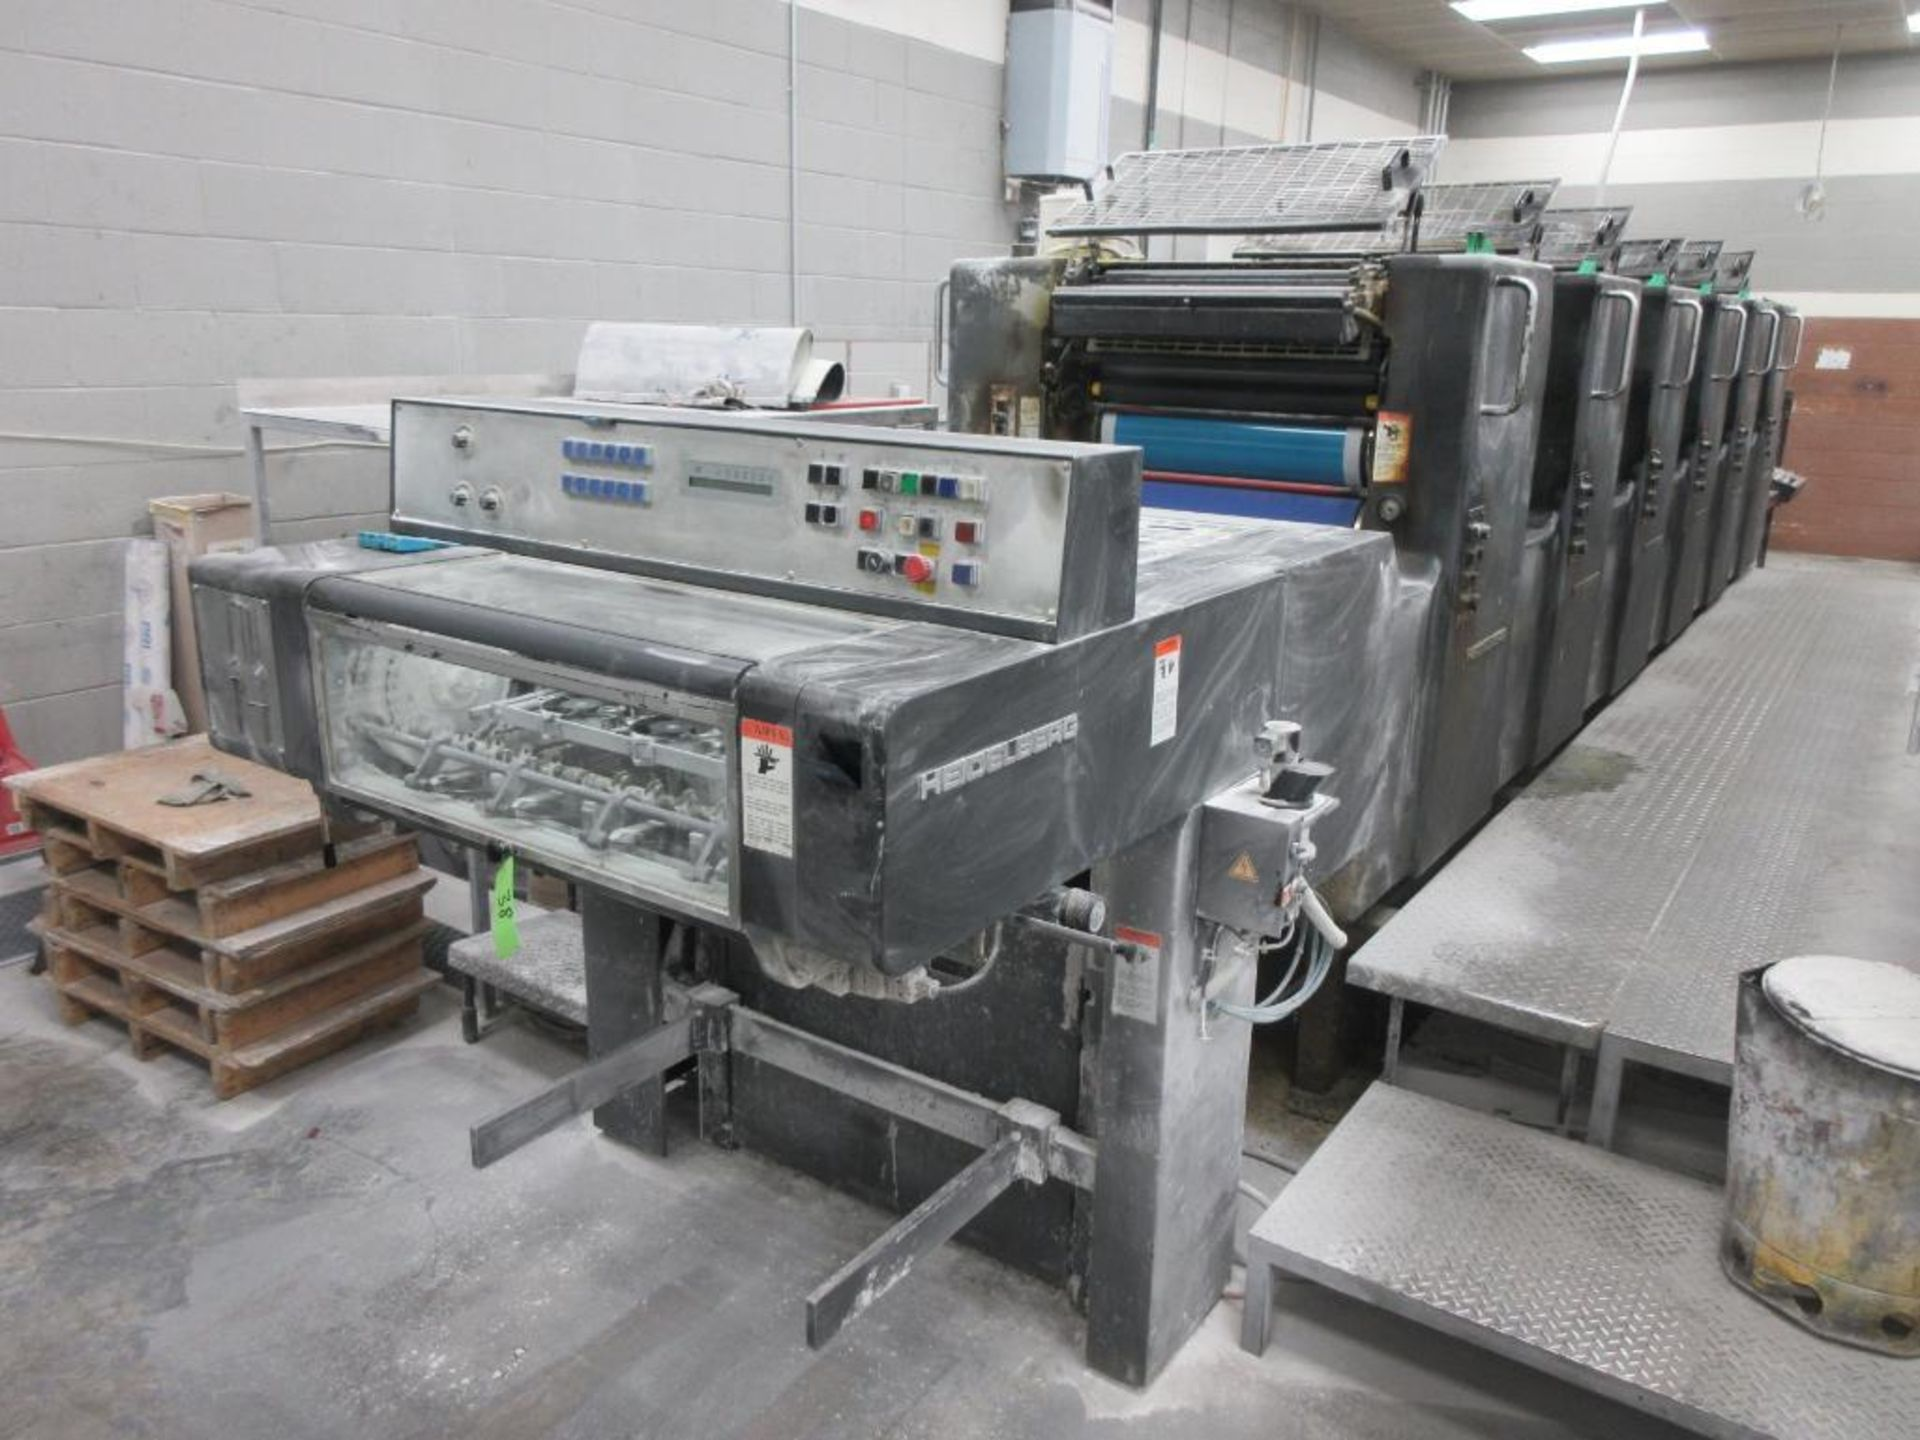 HEIDELBERG MOSP-H 19 x 25_, 6 color sheet fed offset perfecting press with high pile delivery, sn 61 - Image 9 of 10